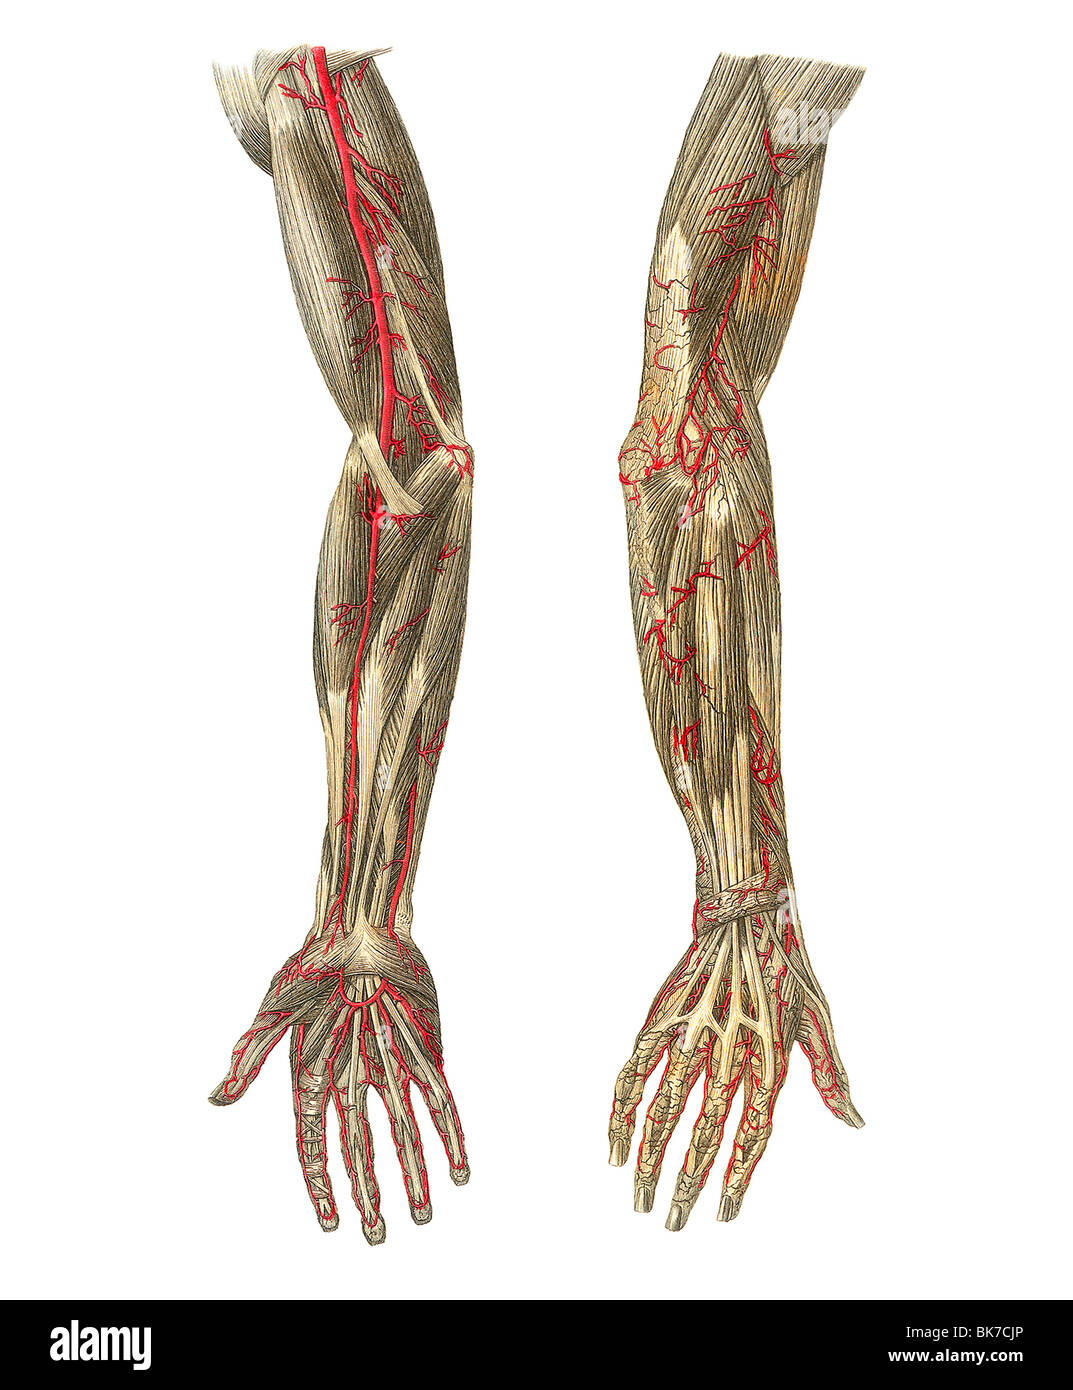 Blood vessels of the arms, artwork Stock Photo: 29052430 - Alamy